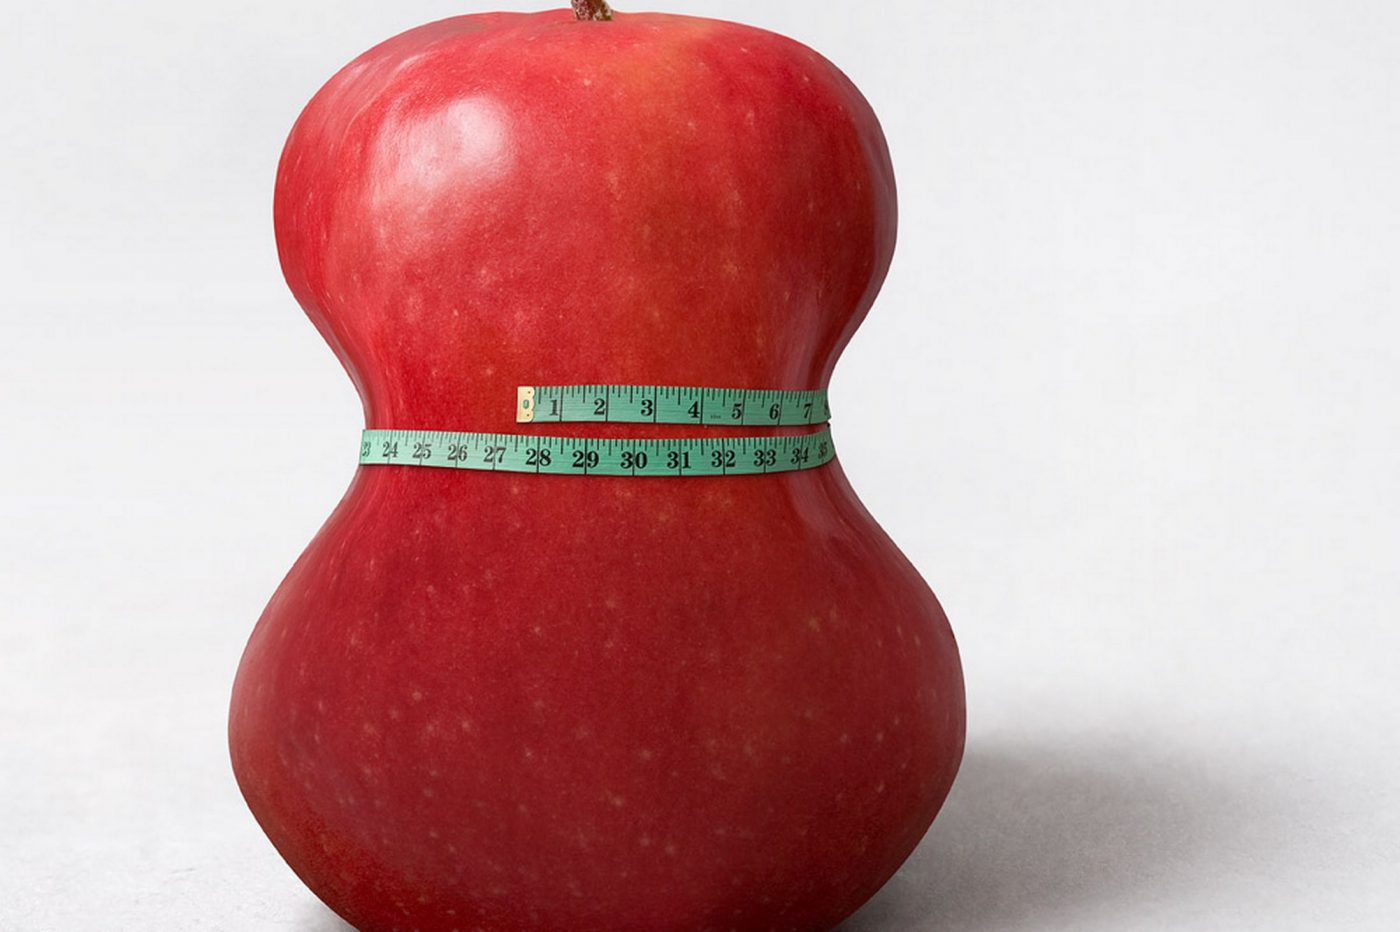 how to get rid of excess fat around the waist